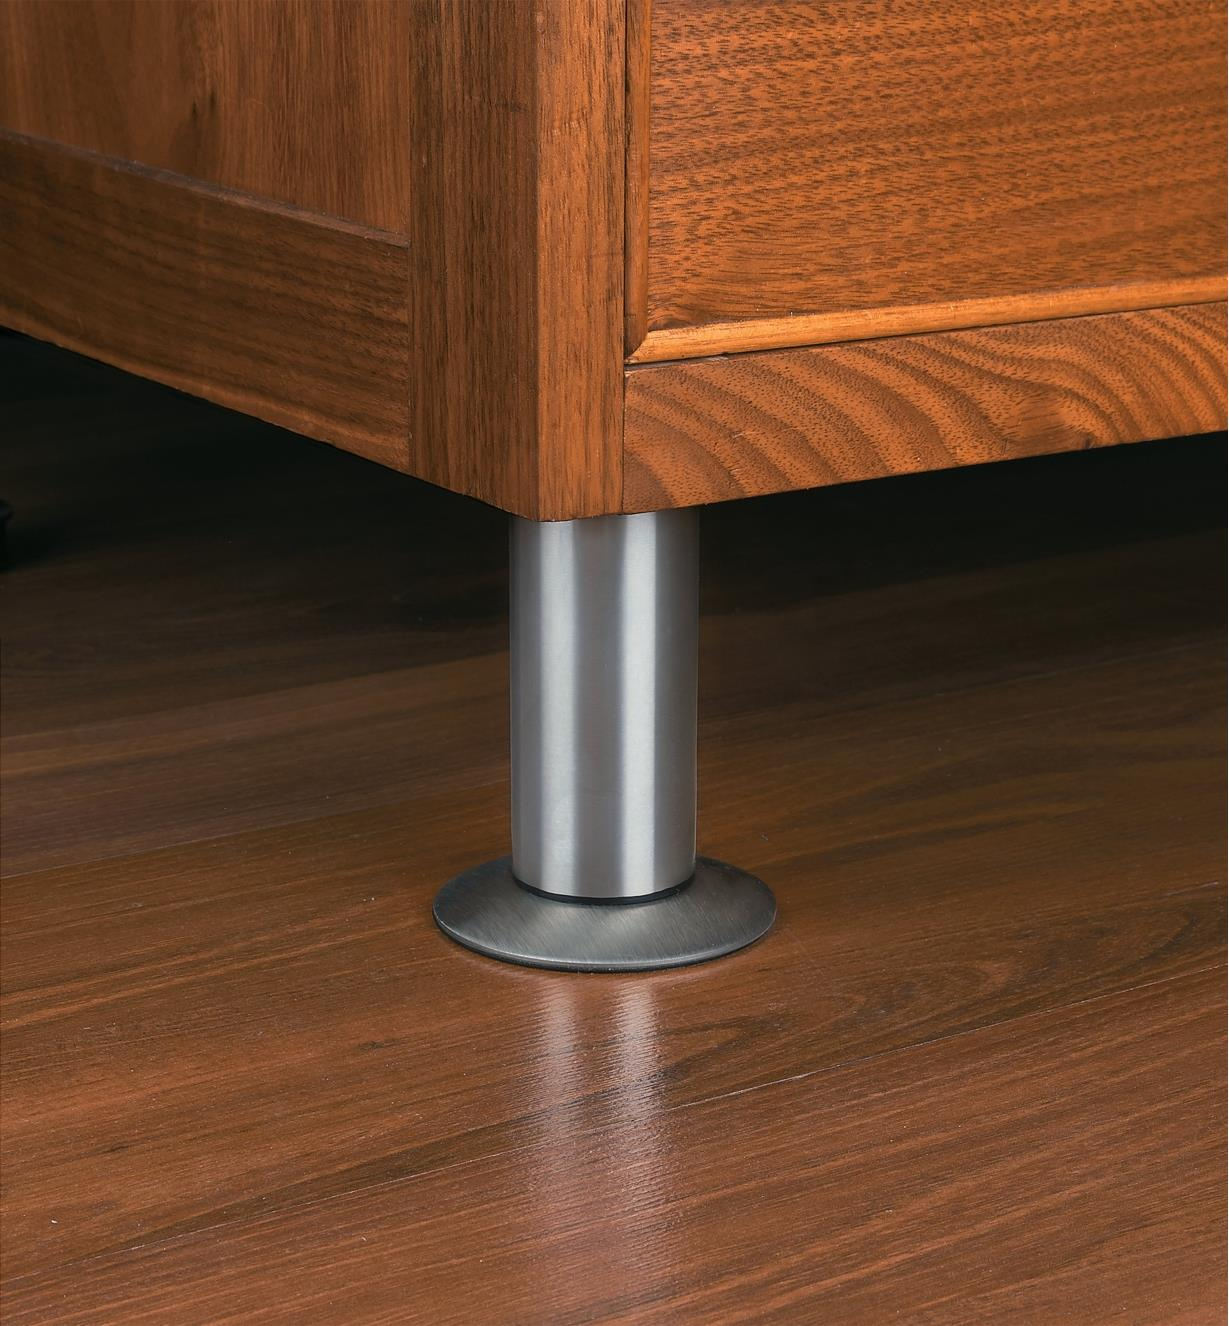 "00S8145 - Stainless-Steel Furniture 60mm (2 1/4"") Leg"